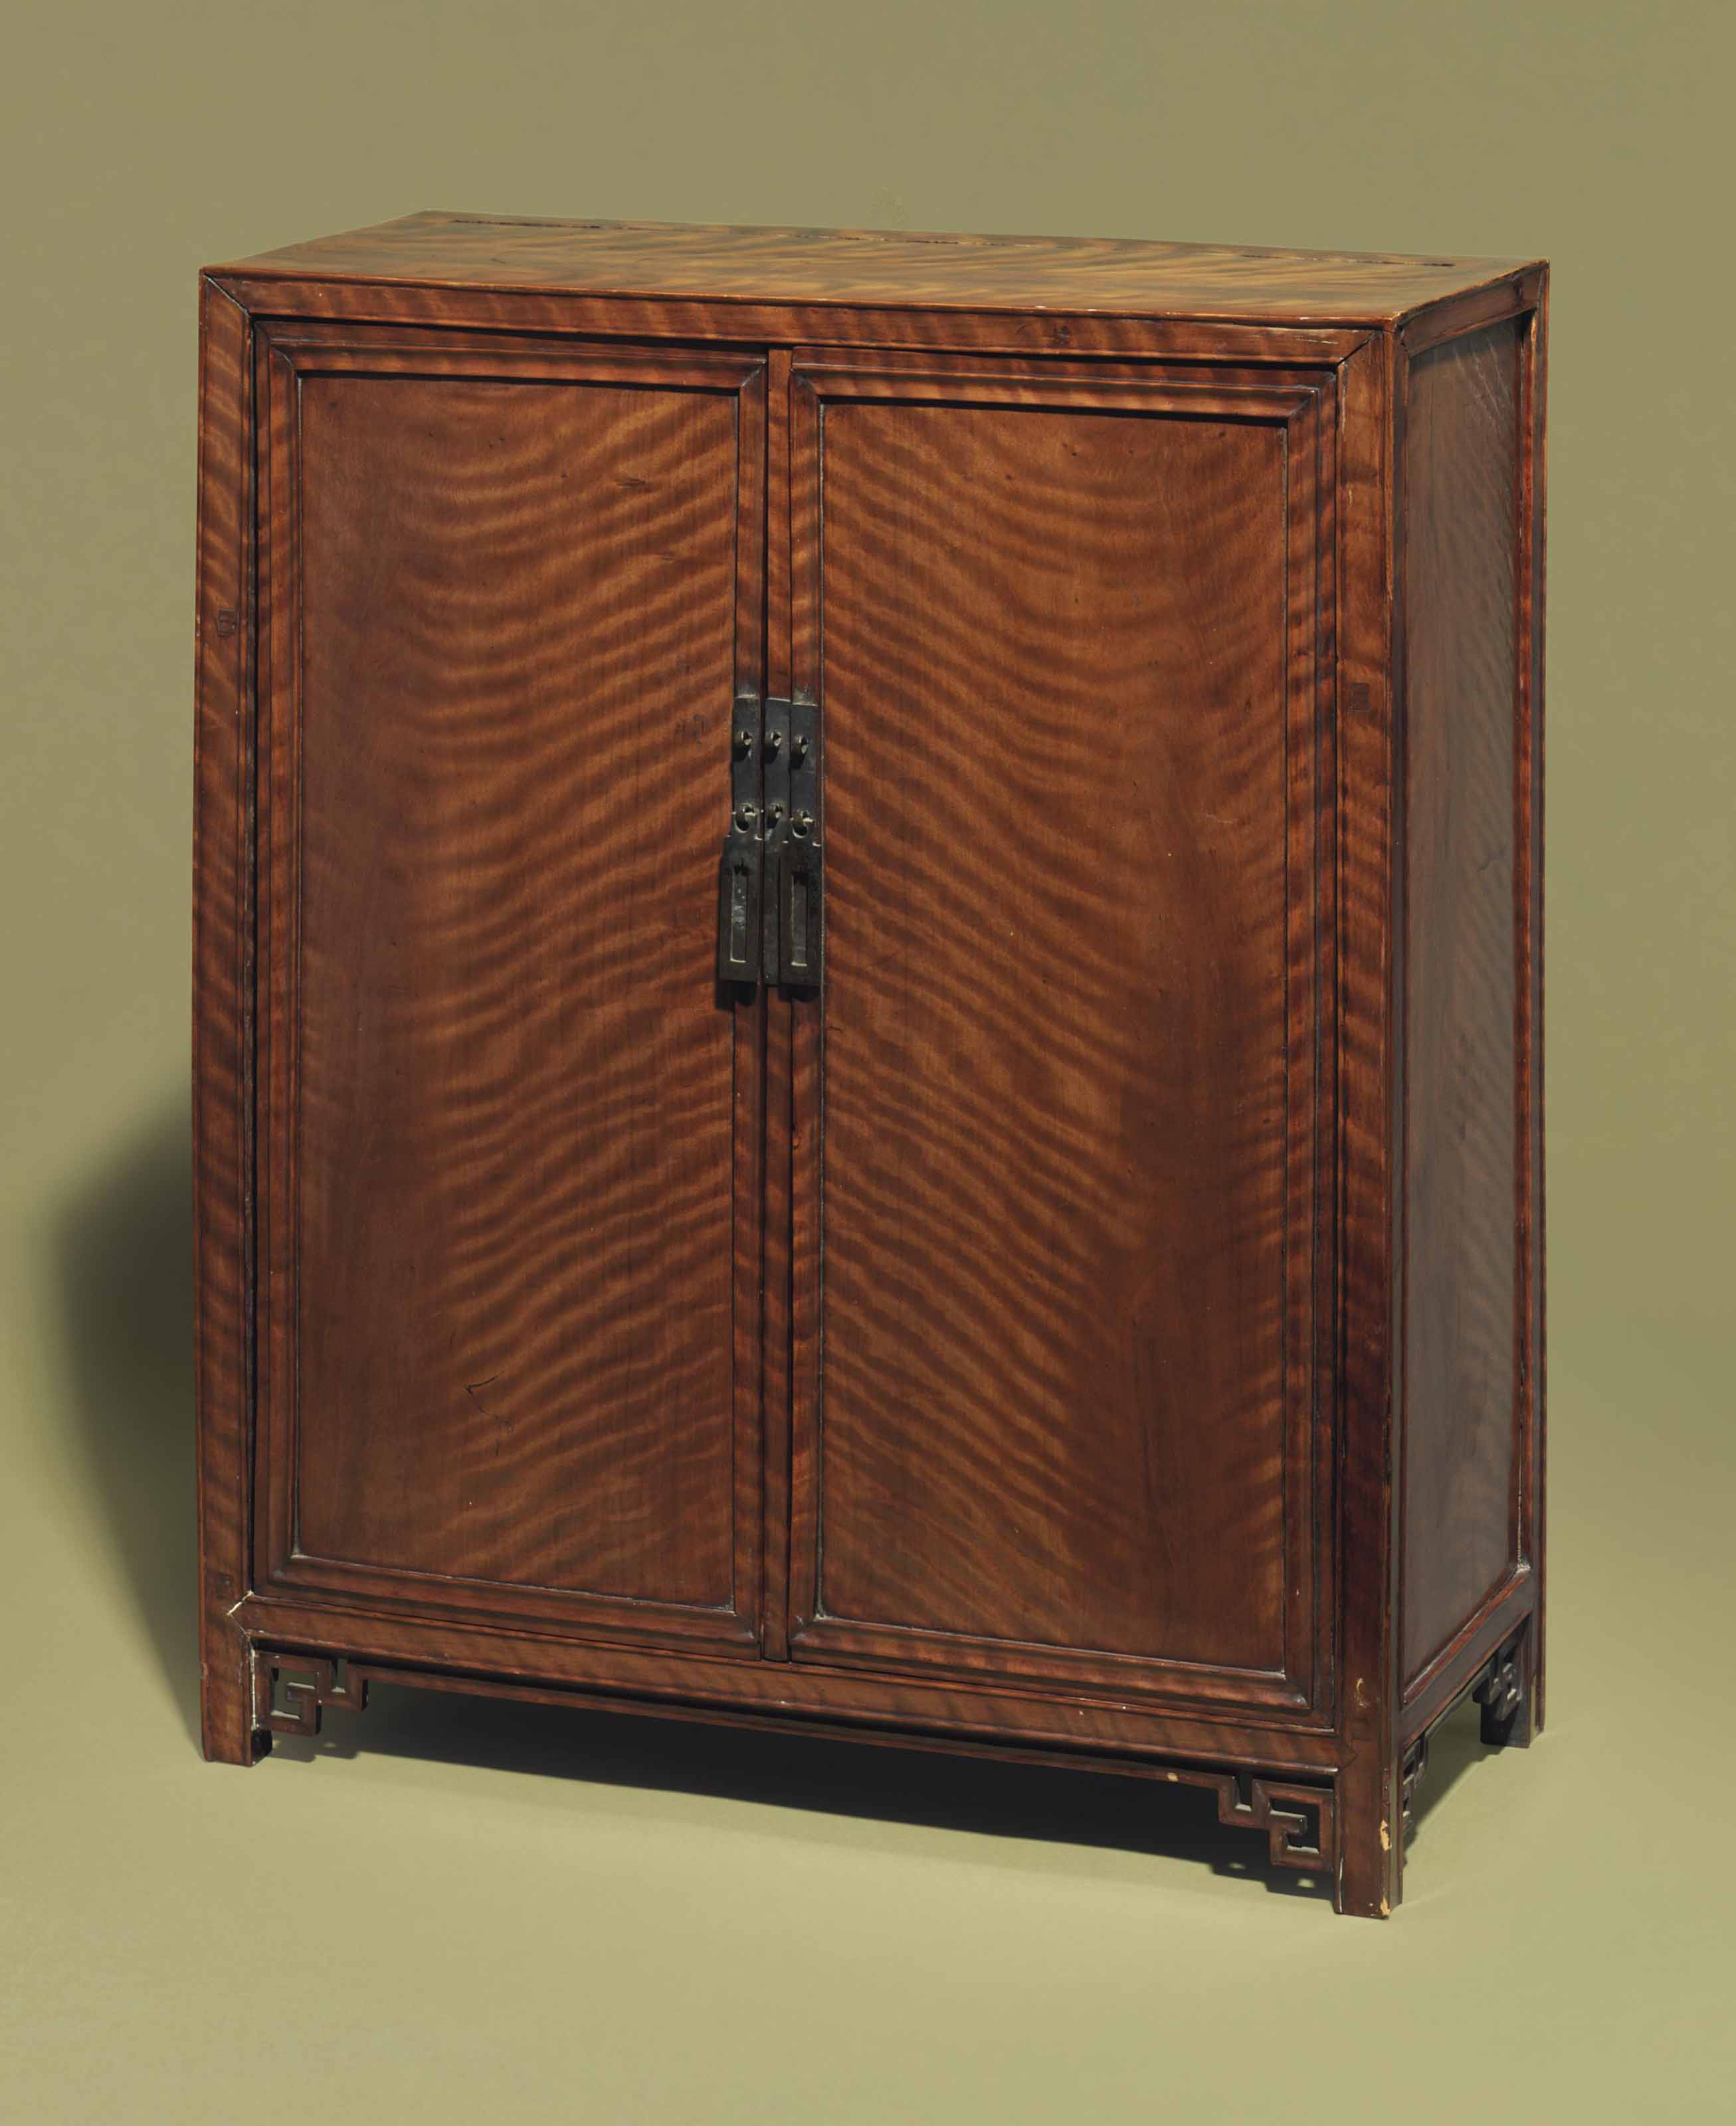 A TIGER-MAPLE TABLE CABINET